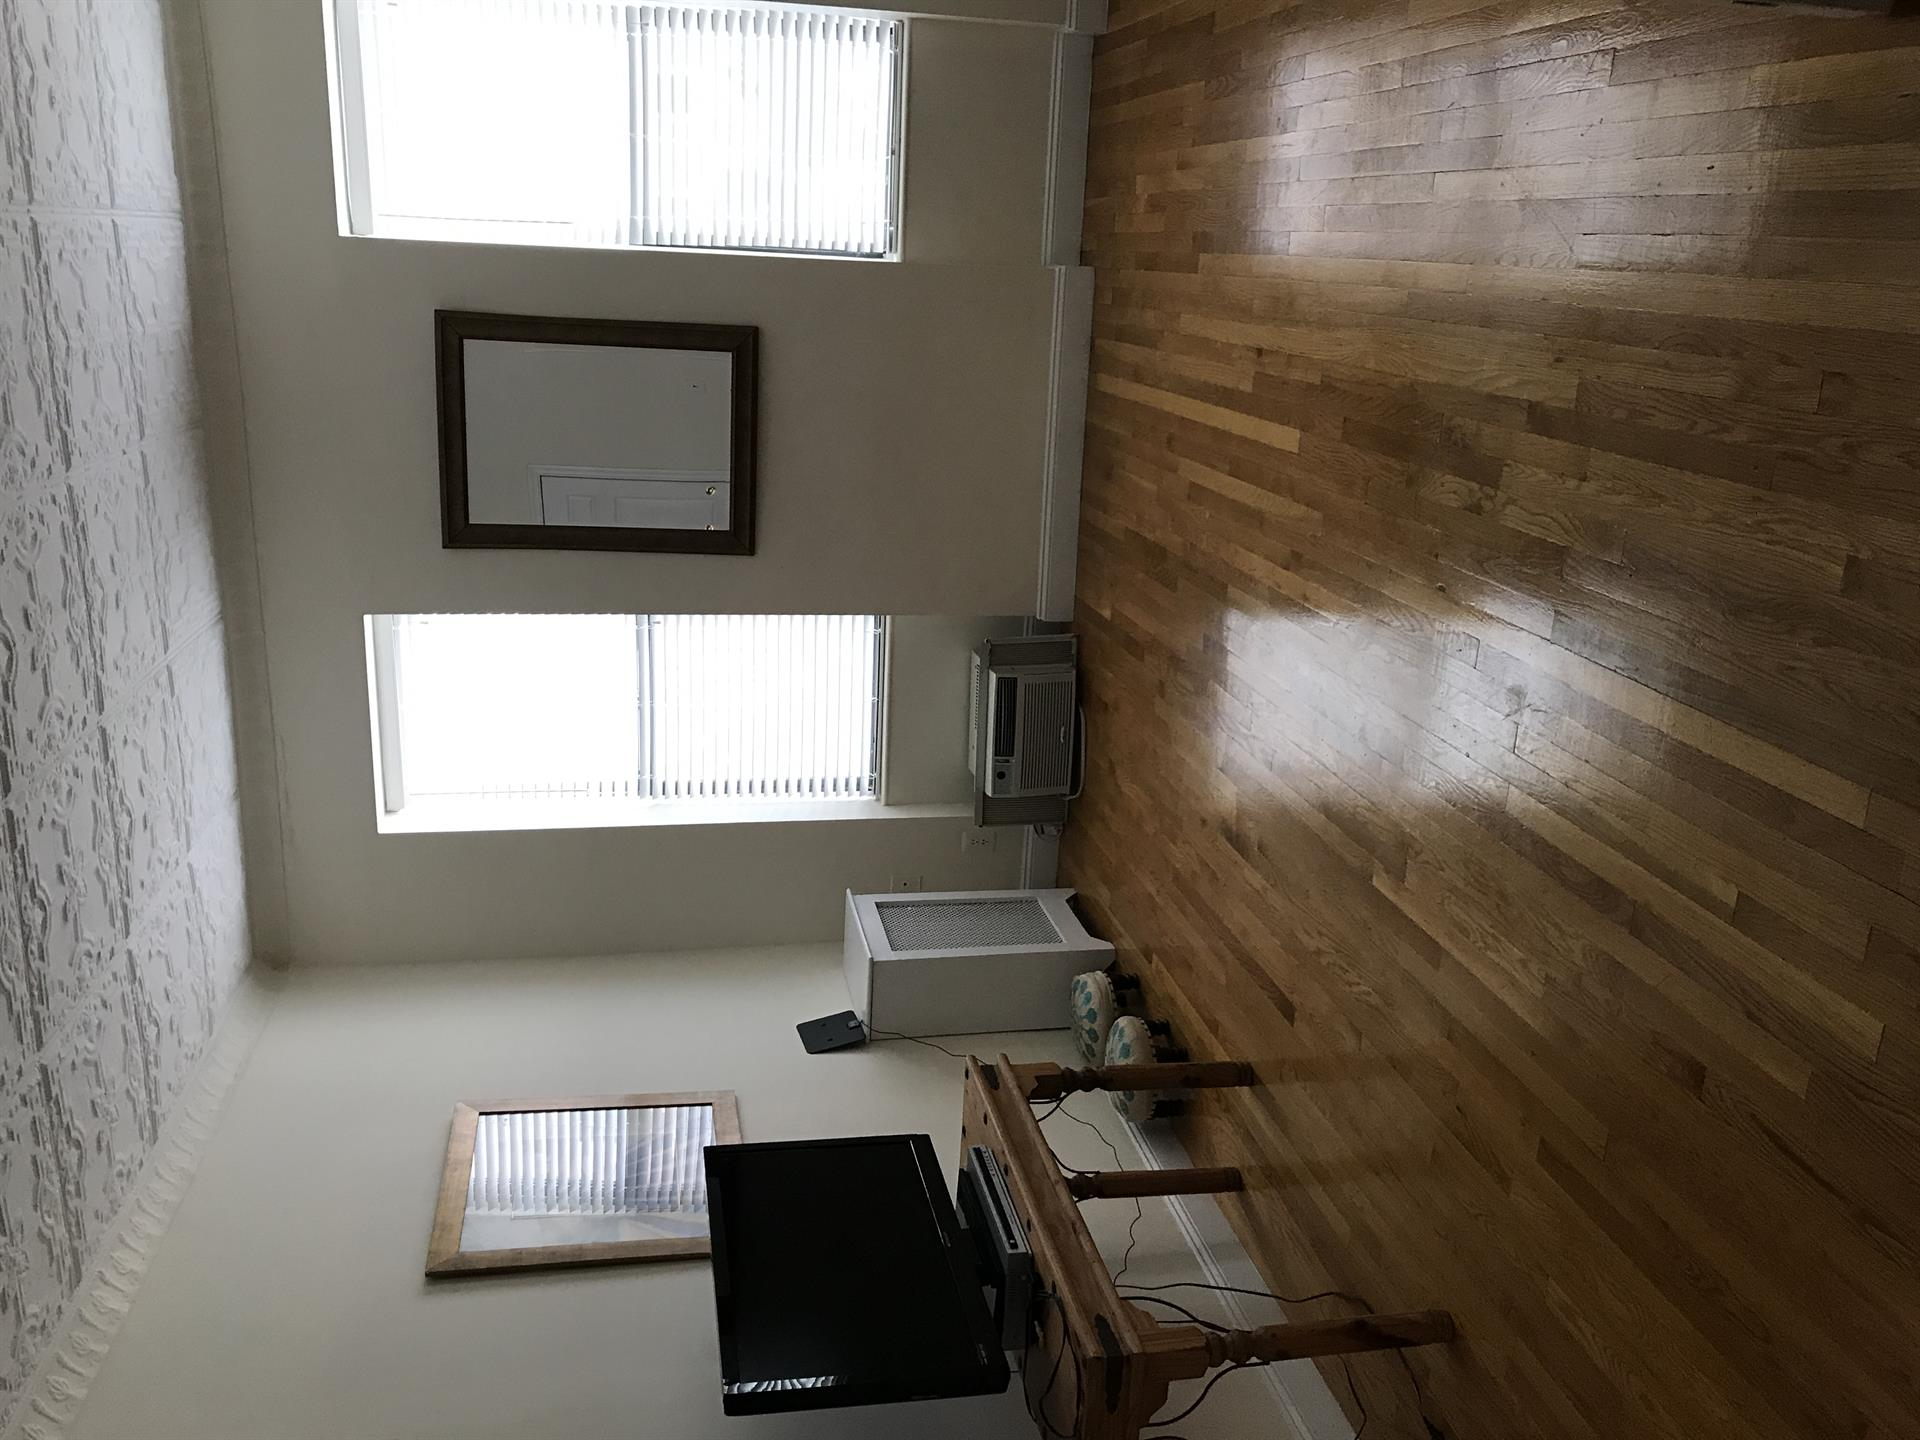 Additional photo for property listing at 197 7th Avenue  Brooklyn, New York 11215 United States